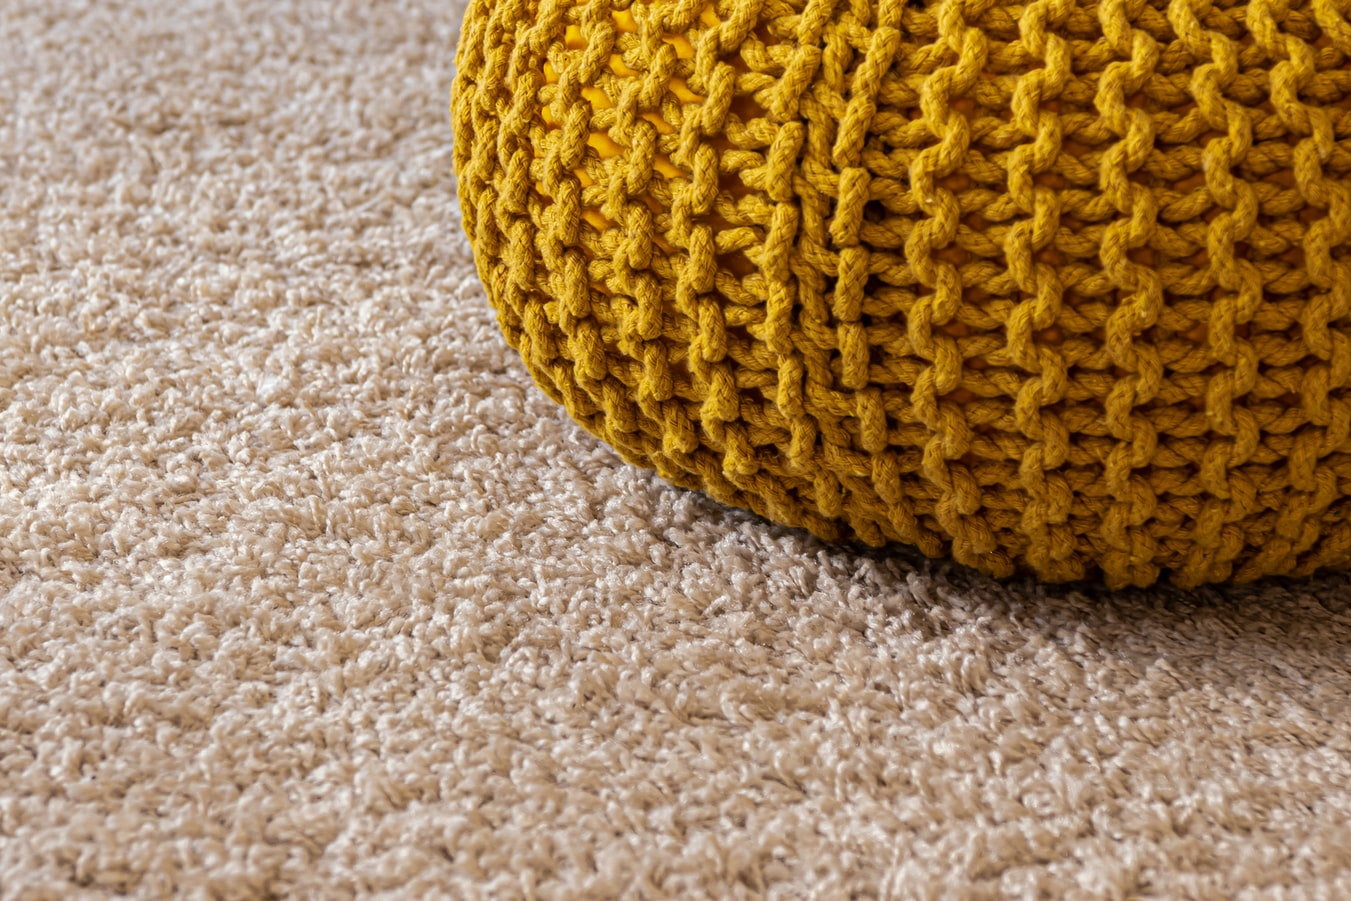 photo 1558944351 3f79926e74ef - Carpets: How to choose them and how to place them